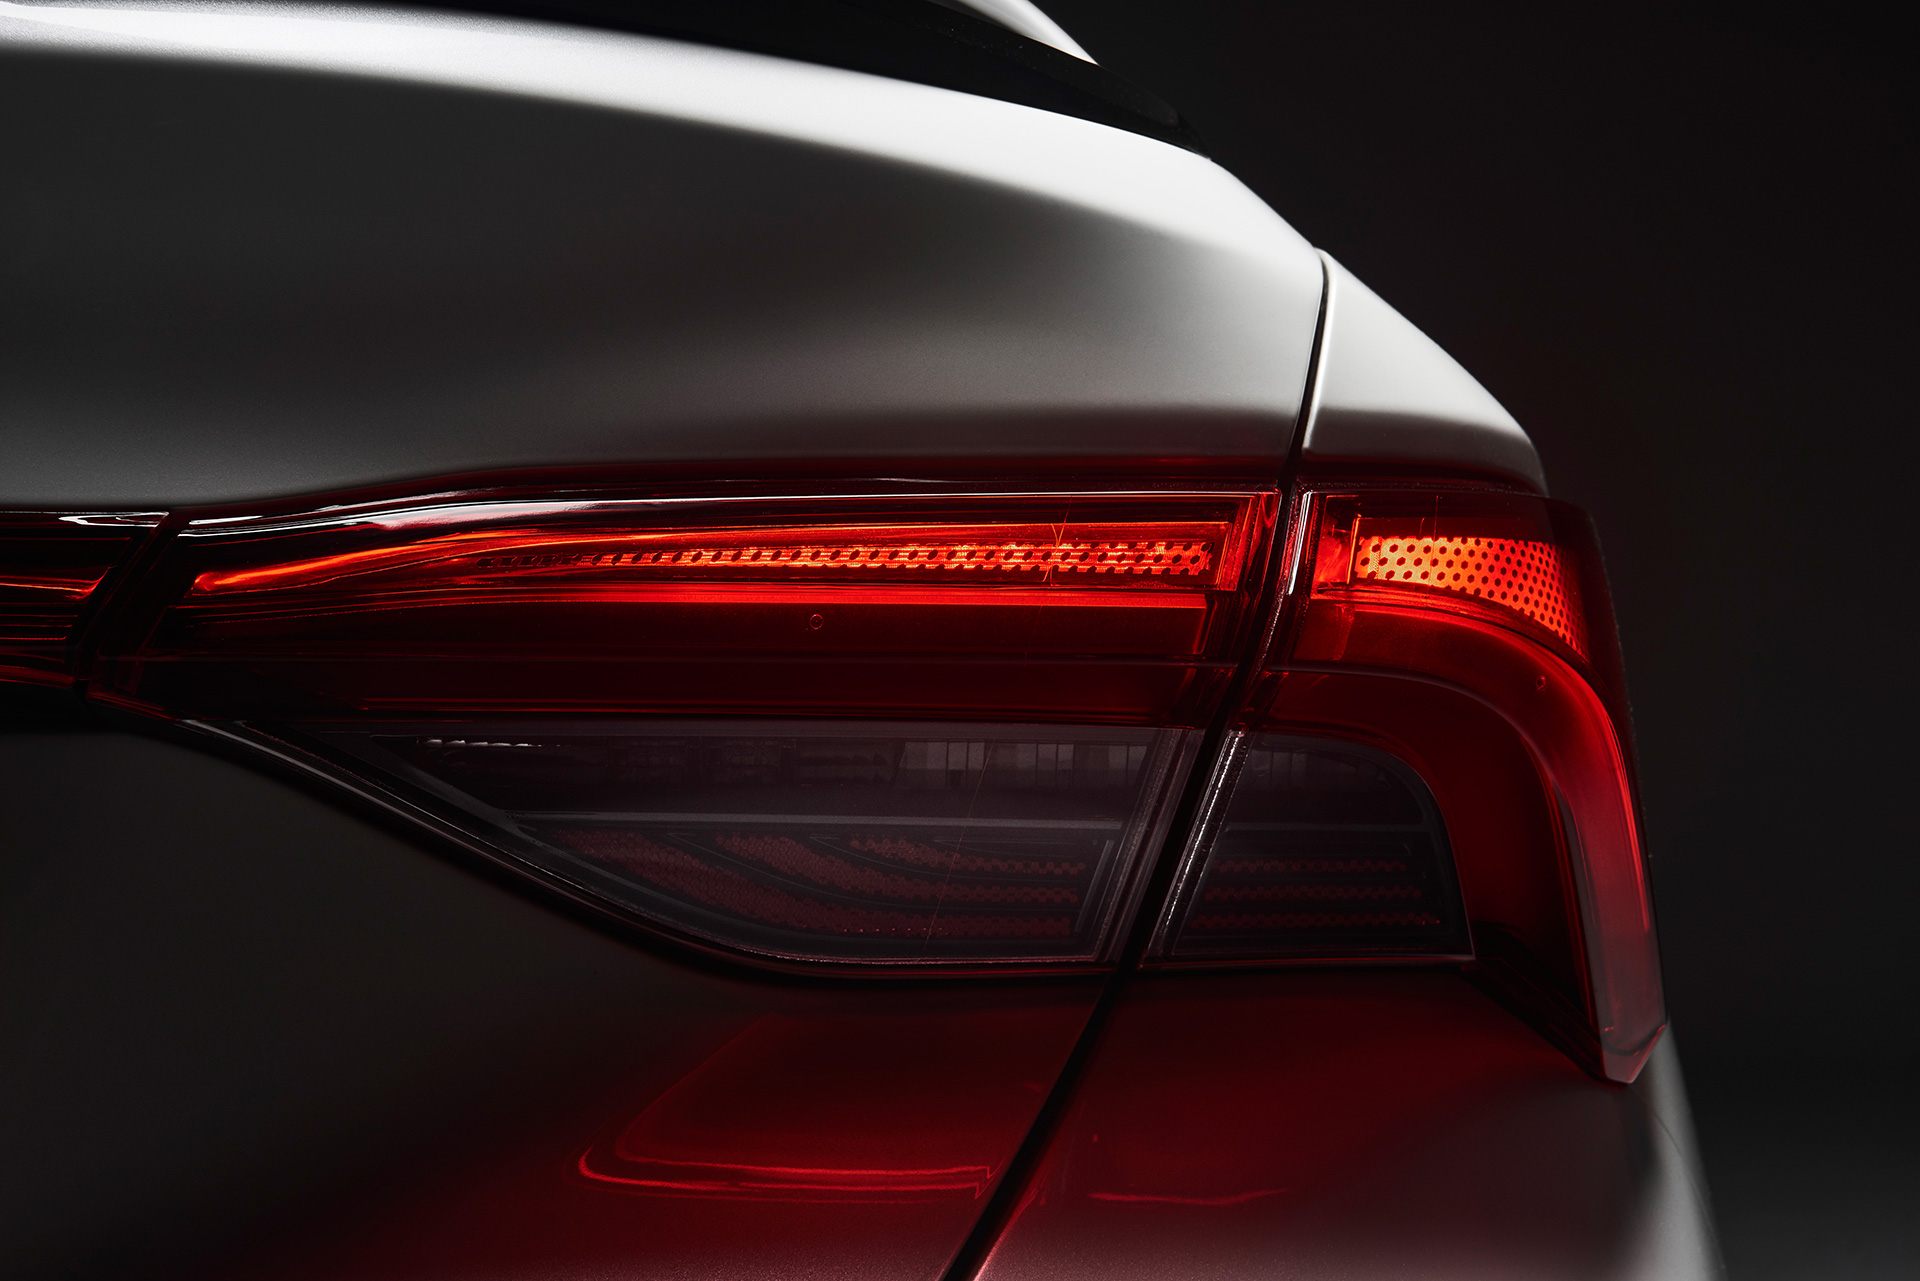 Attainable Premium, Actualized: All-New 2019 Toyota Avalon Beams